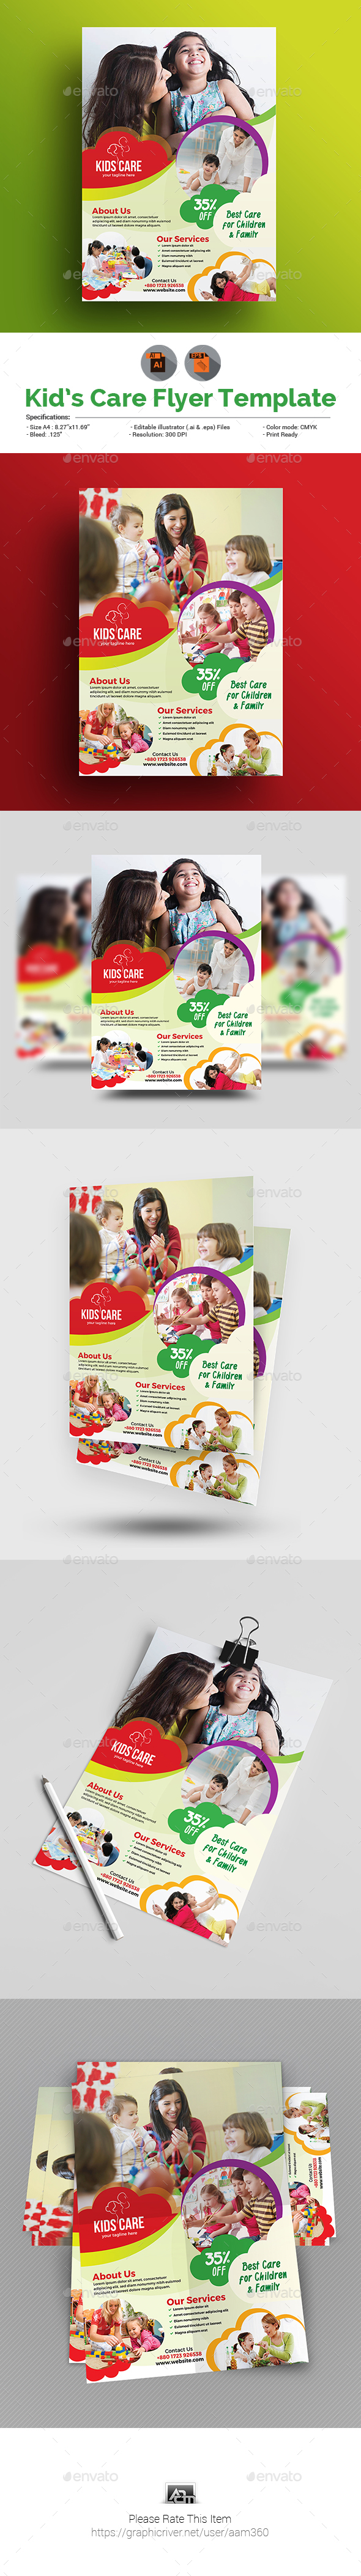 Child Care Flyer - Corporate Flyers